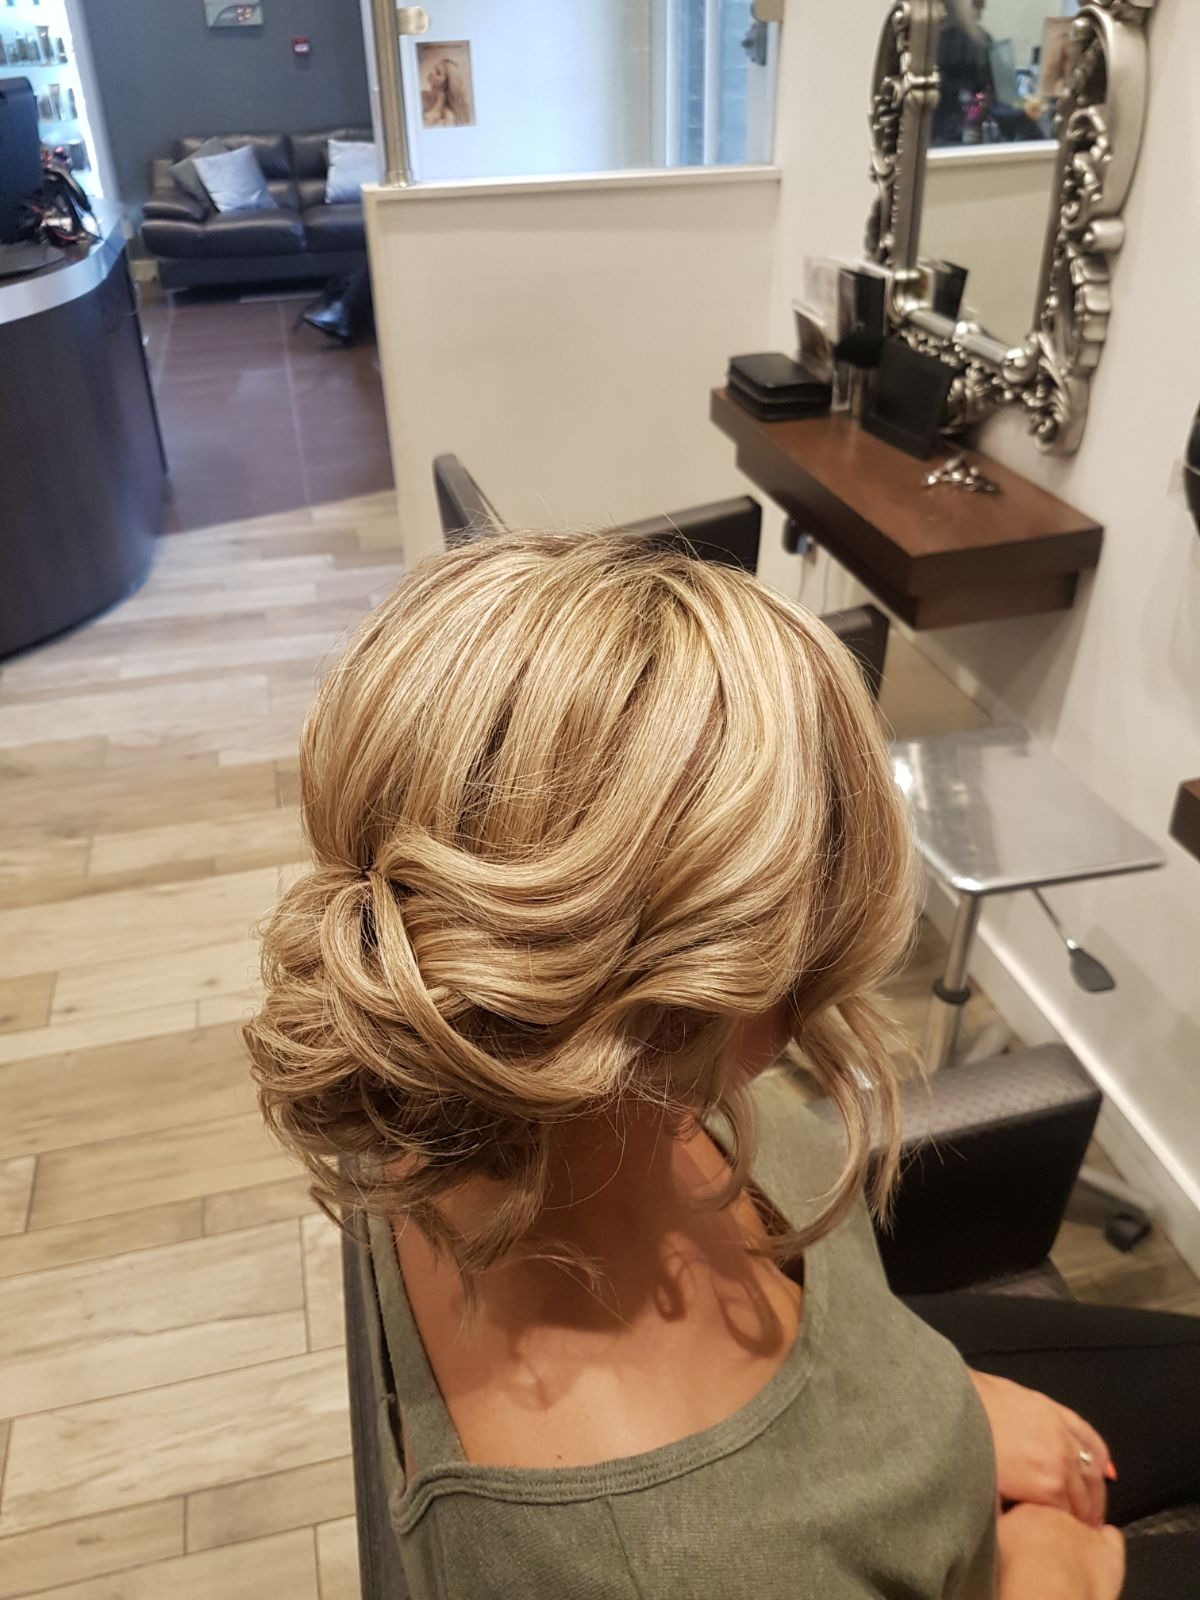 One of he many variations of our style 'Elsa'. Elegant and chic but also wearable on a night on the town and available at the Style Station for £12/£20 depending on whether you want to rock the curls or not.